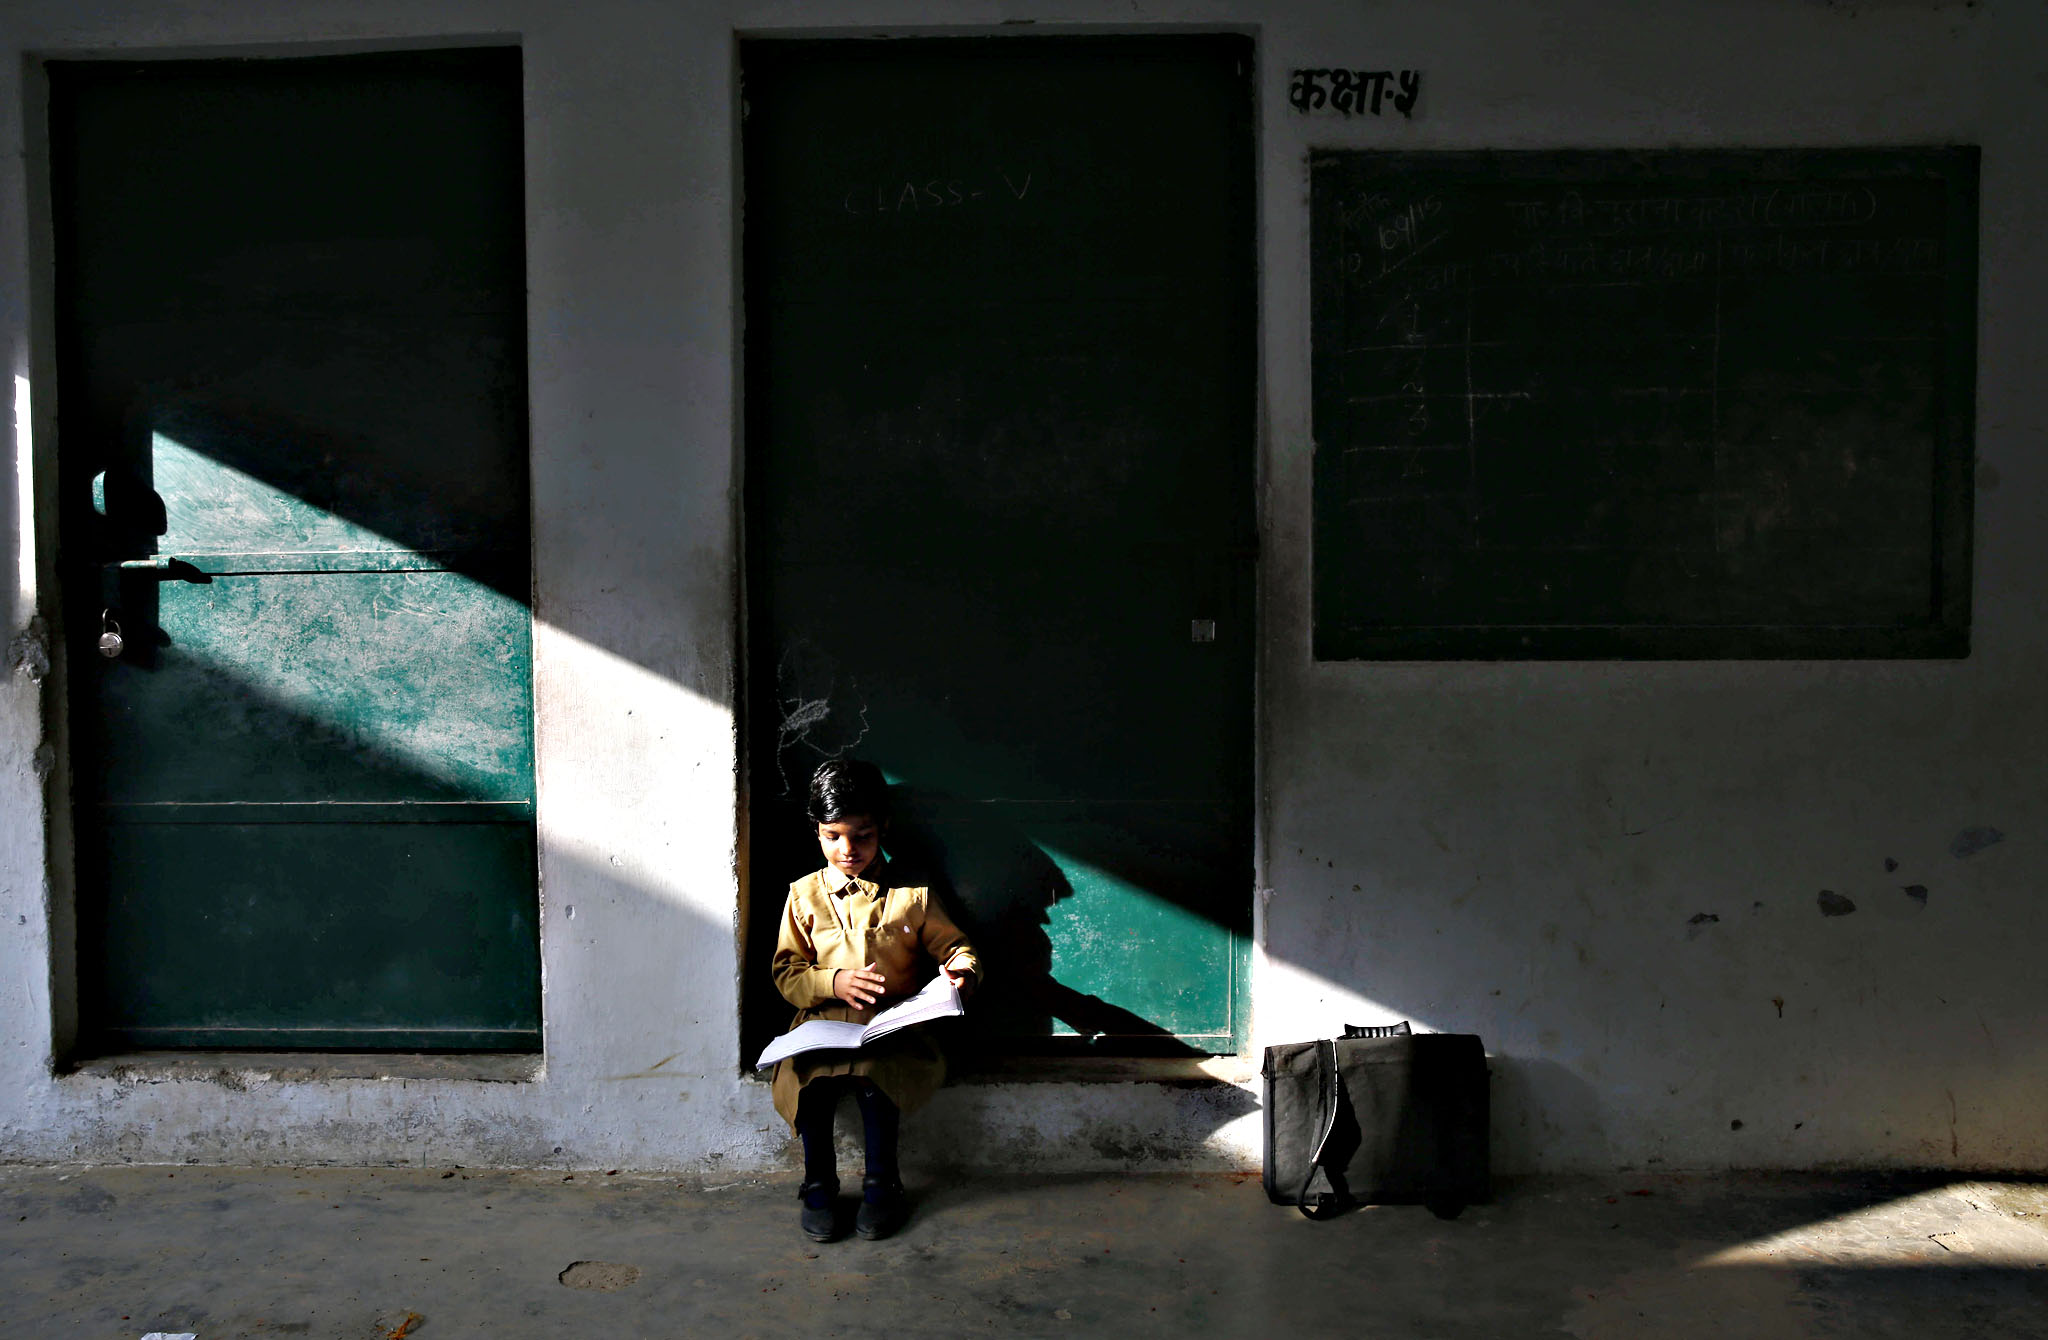 A child goes through his school book at a government-run school on the eve of International Literacy Day in Allahabad, India, Monday, Sept. 7, 2015. According to Indian Census 2011, the literacy rate is 74.04 percent of the total population aged seven and above, though the government has made a law that every child under the age of 14 should get free education, the problem of illiteracy is still at large especially in the rural areas